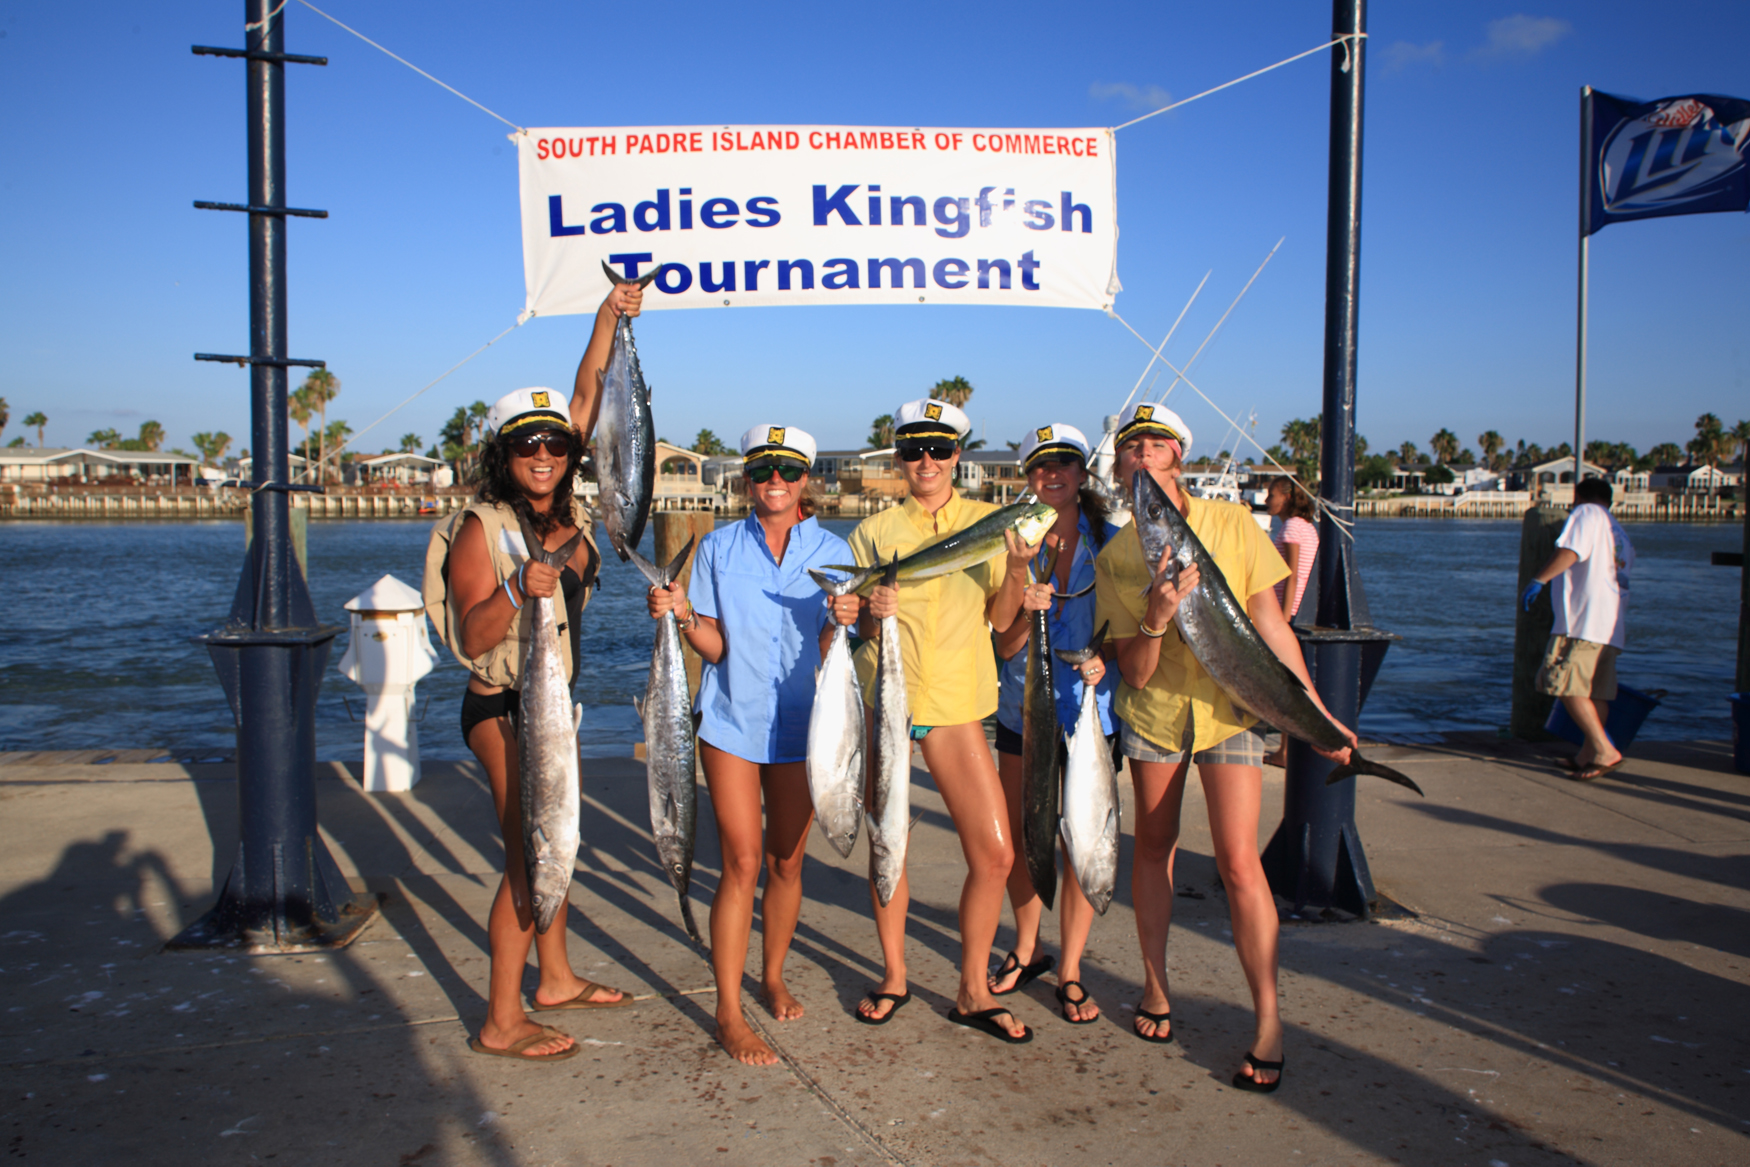 2015 1024x683 The 37th Annual South Padre Island Chamber of Commerce Ladies Kingfish Tournament